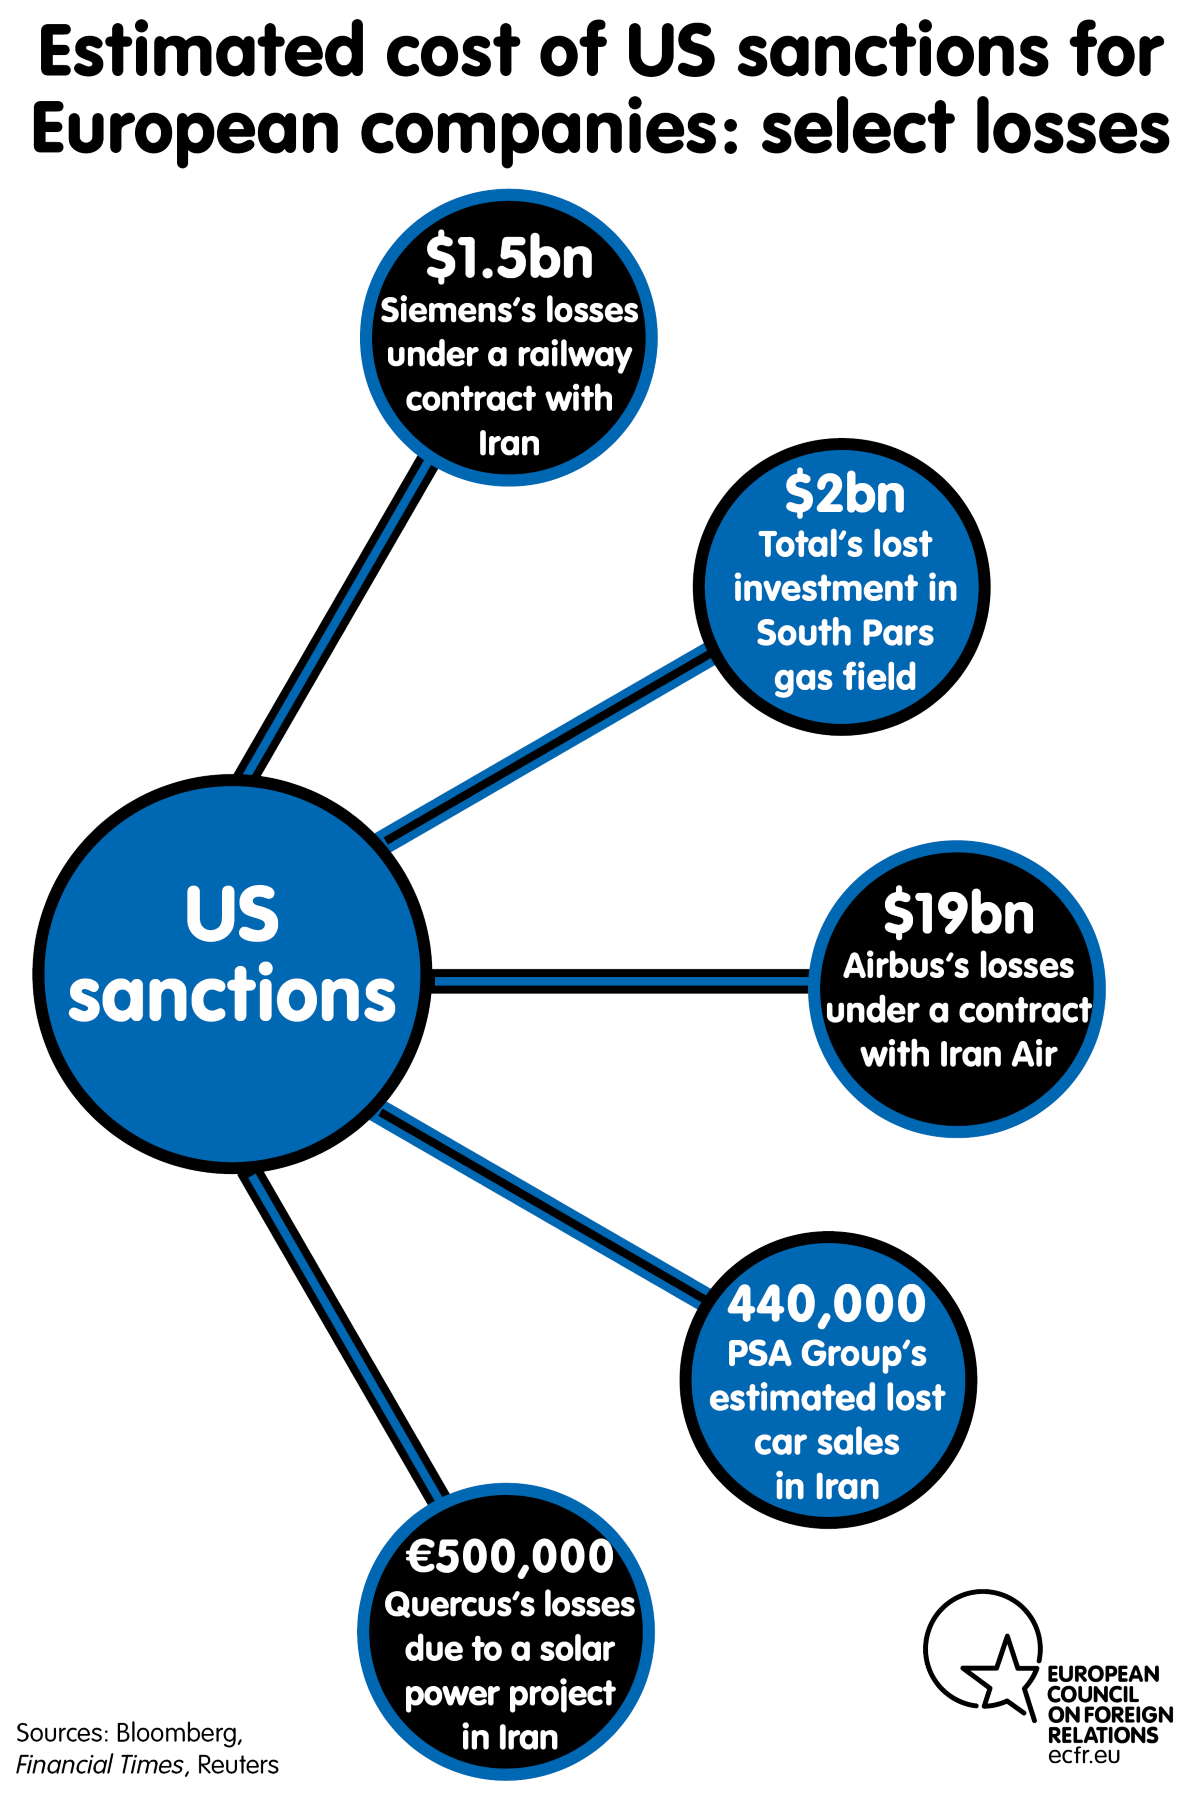 Estimated cost of US sanctions for European companies: select losses